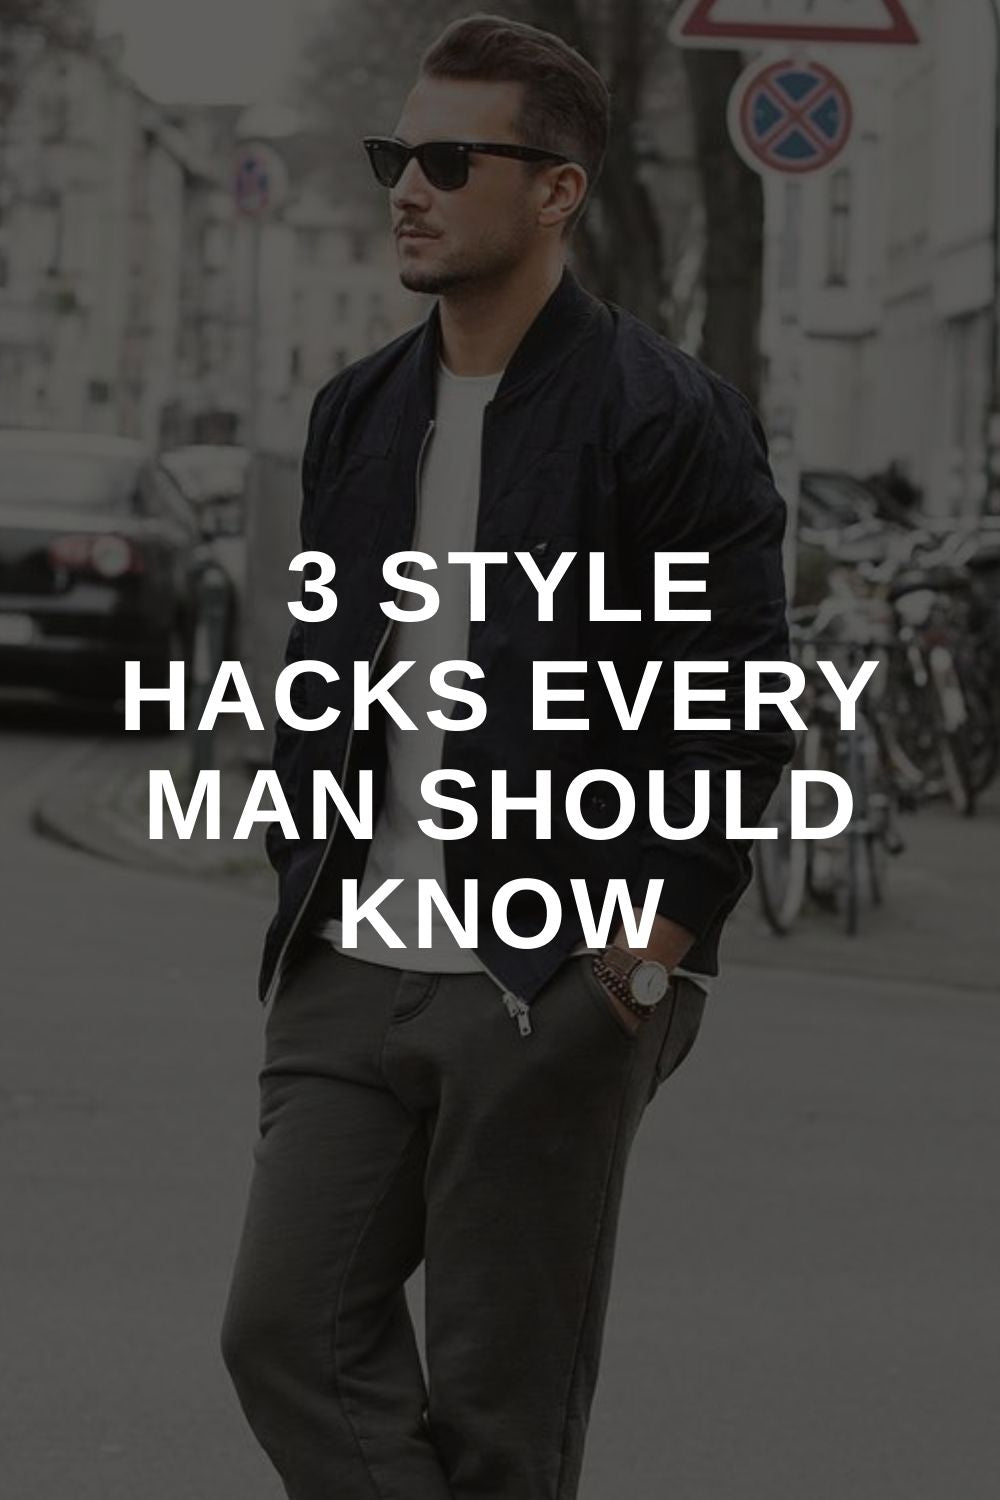 3 Style Hacks Every Man Should Know